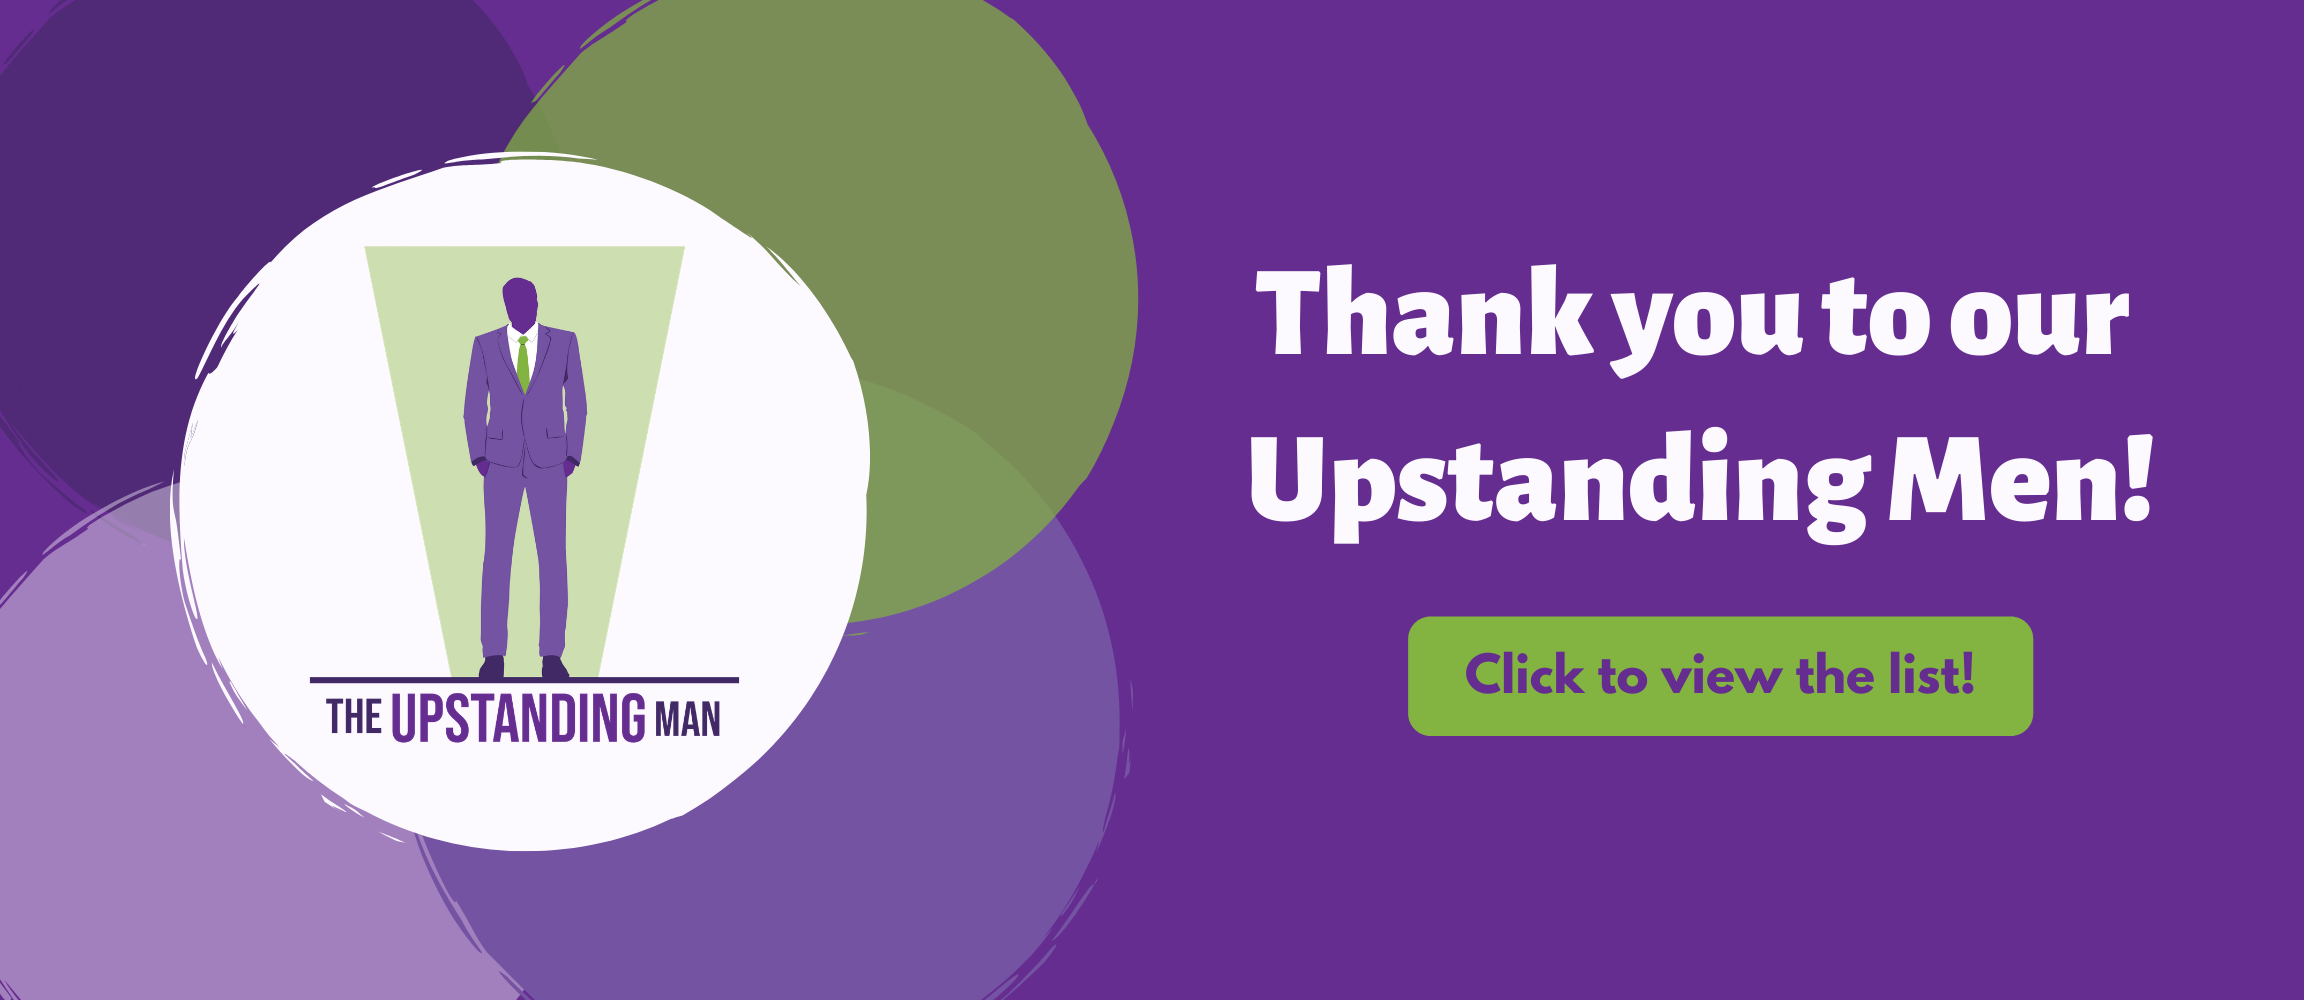 Upstanding Man Thank You Web Slider 2020